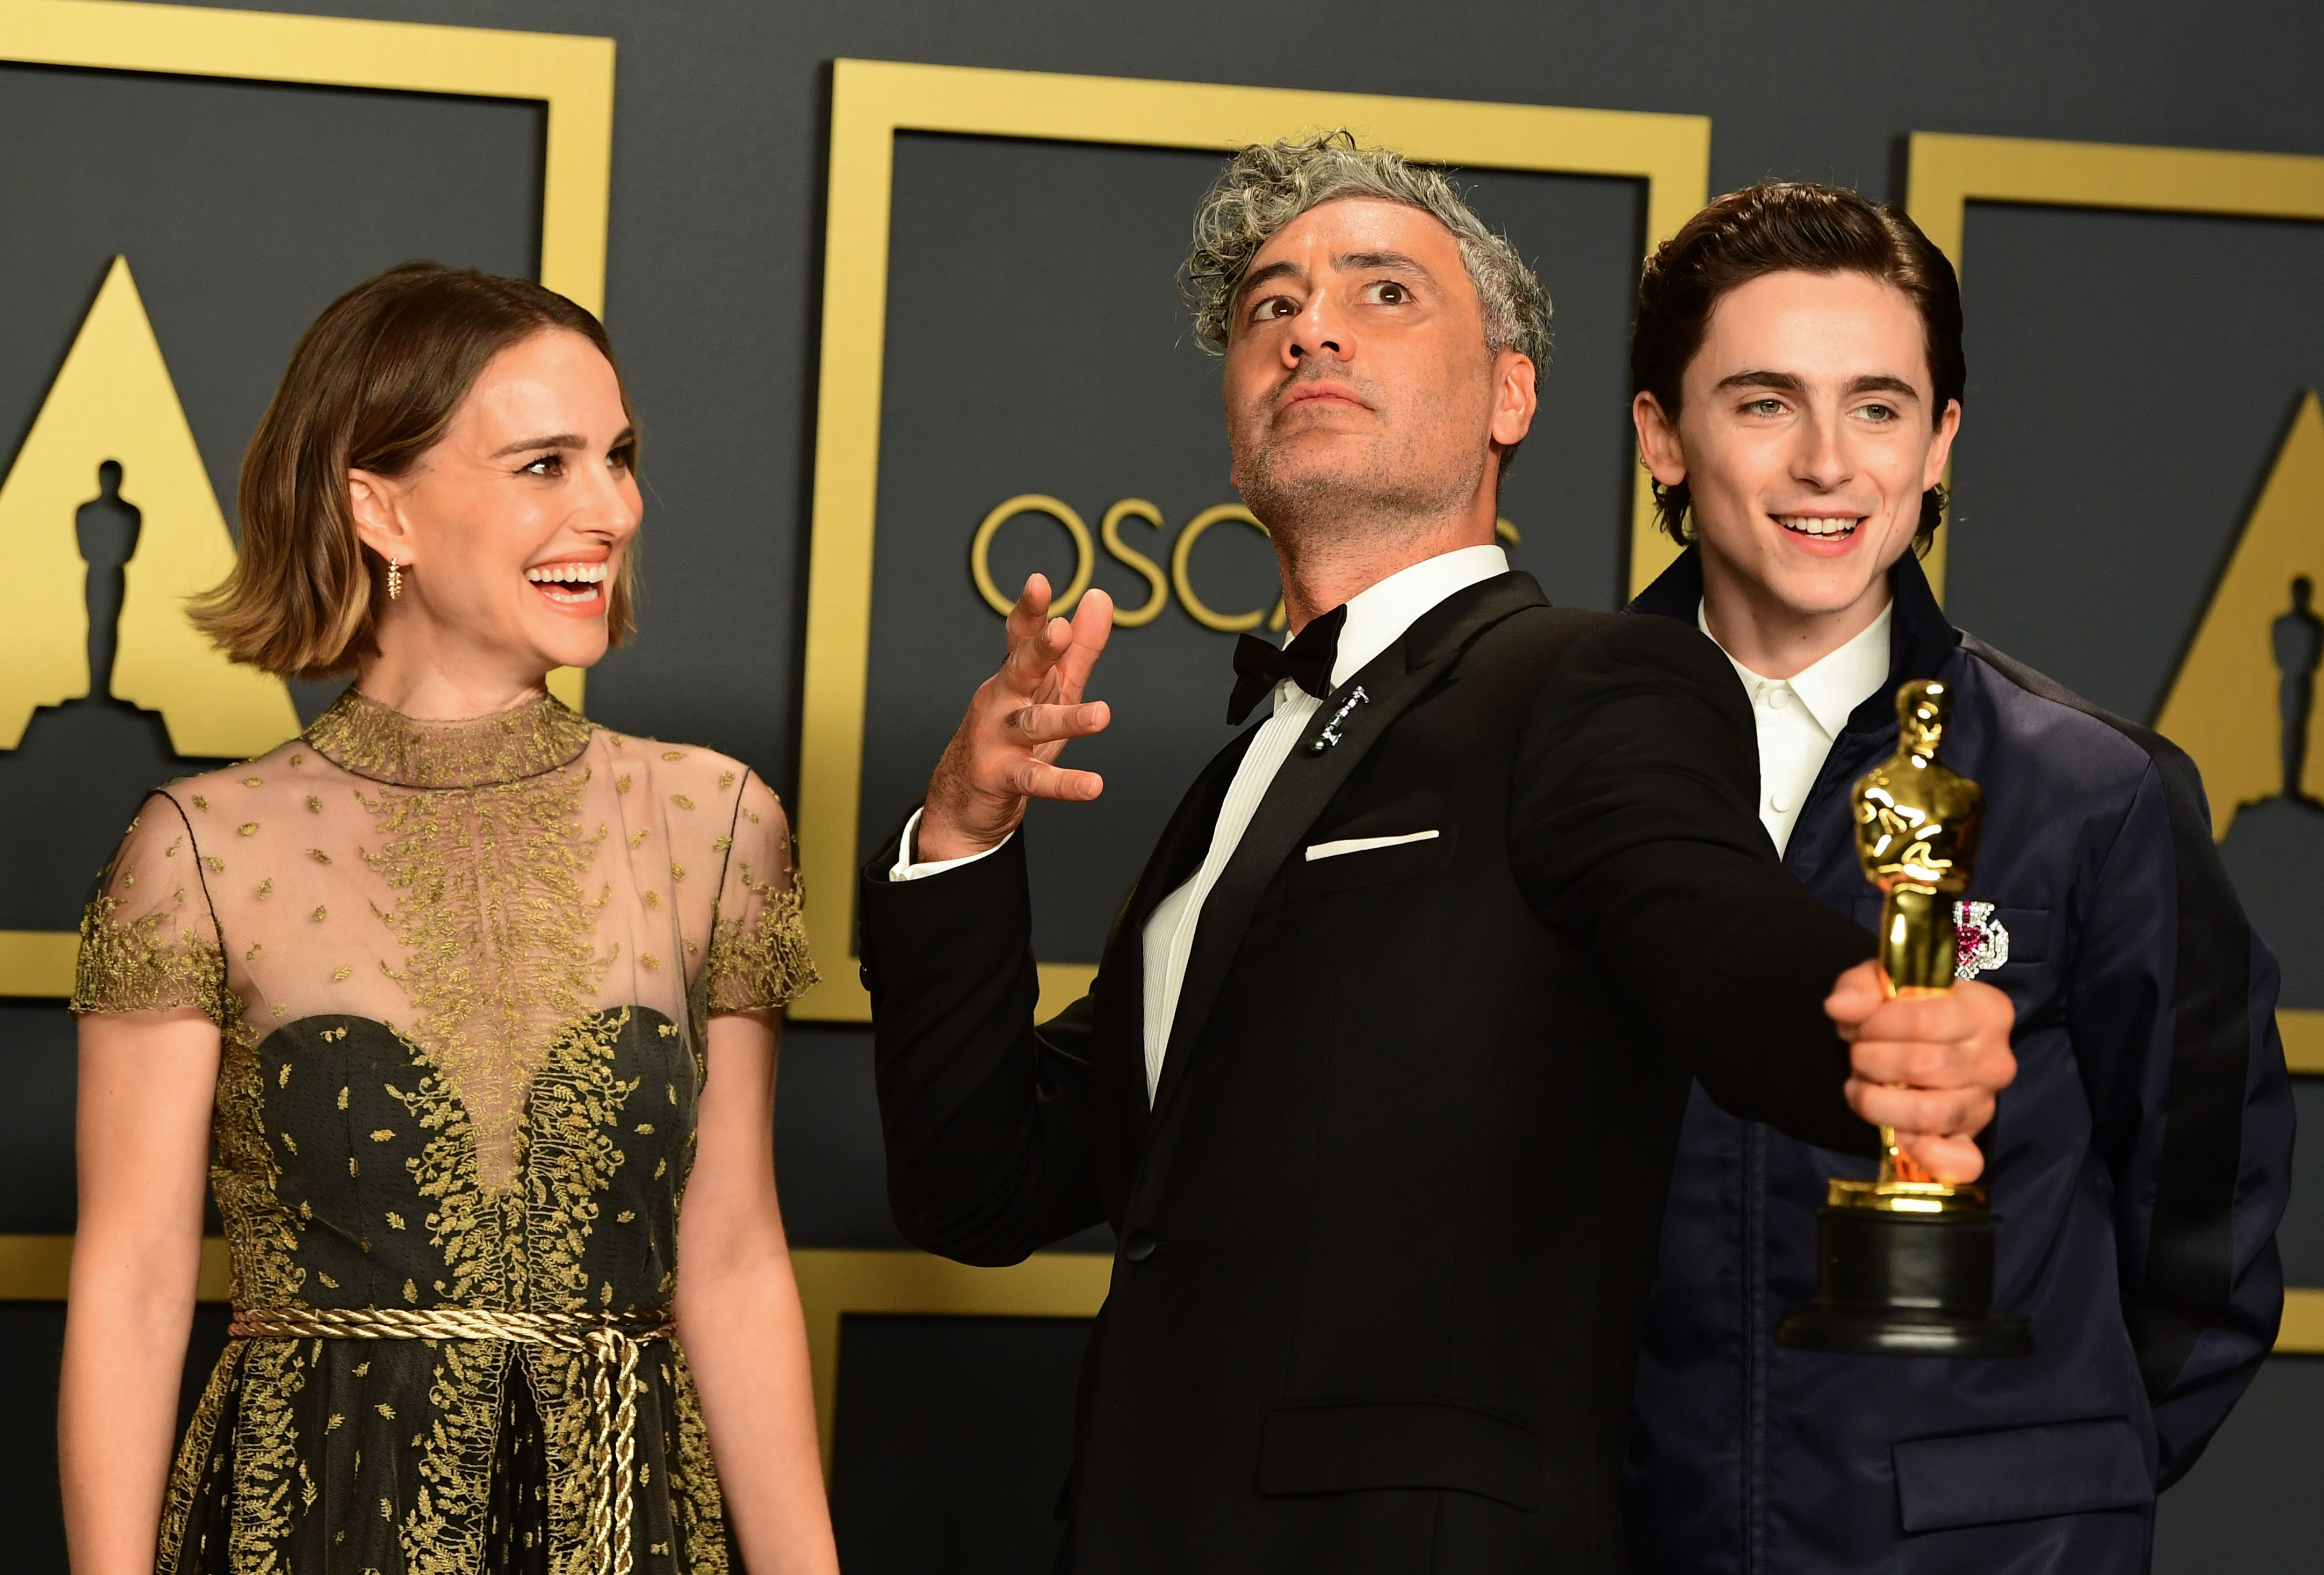 """Winner of Best Adapted Screenplay for """"Jojo Rabbit"""" New Zealand director Taika Waititi poses in the press room with US-Israeli actress Natalie Portman and US-French actor Timothee Chalamet during the 92nd Oscars at the Dolby Theater in Hollywood, California on February 9, 2020. (Photo by FREDERIC J. BROWN / AFP) (Photo by FREDERIC J. BROWN/AFP via Getty Images)"""